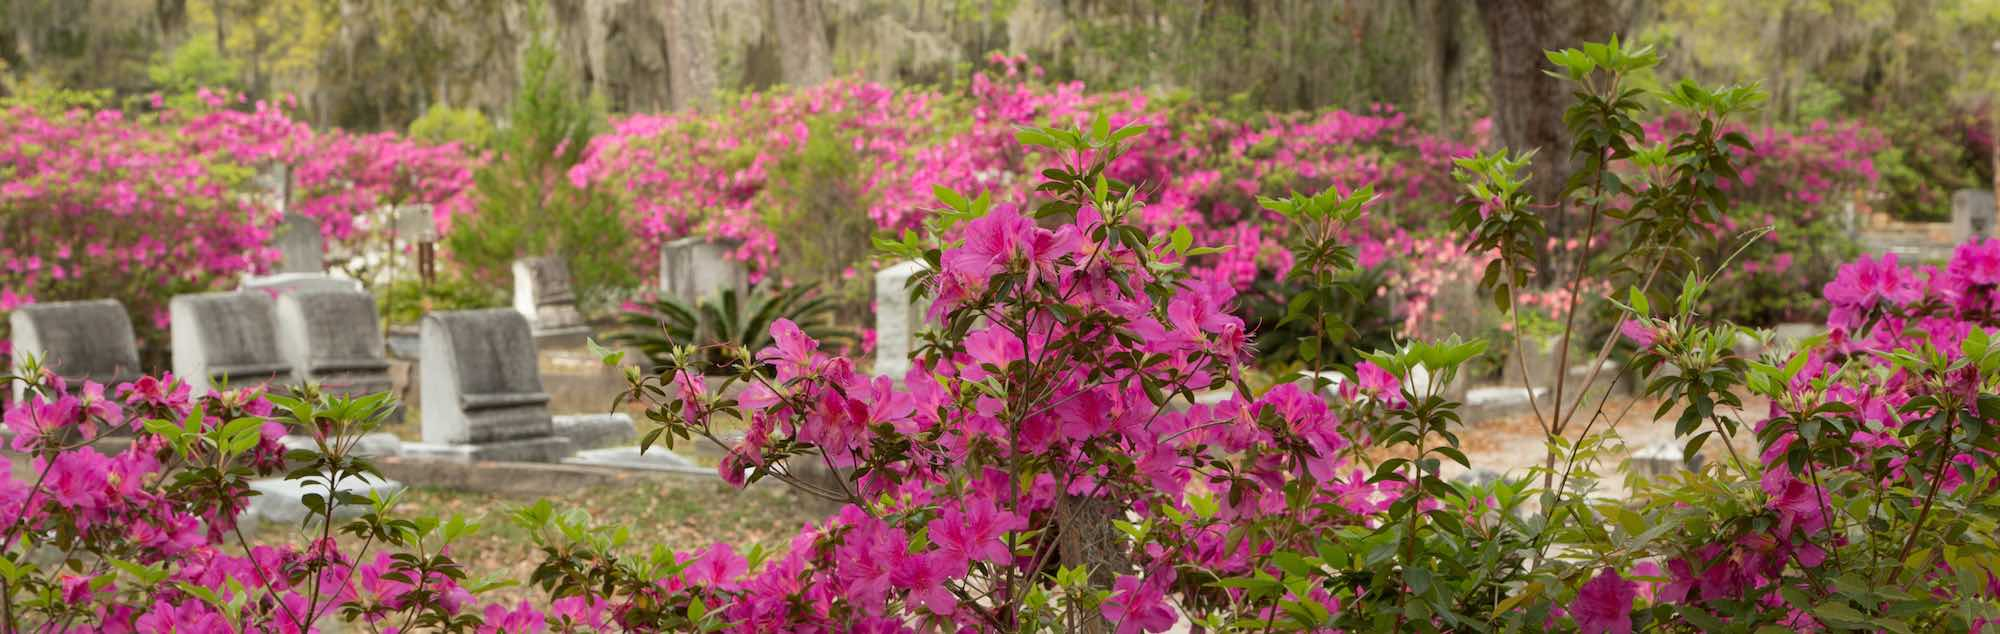 Azaleas in bloom in Savannah's Bonaventure Cemetery.